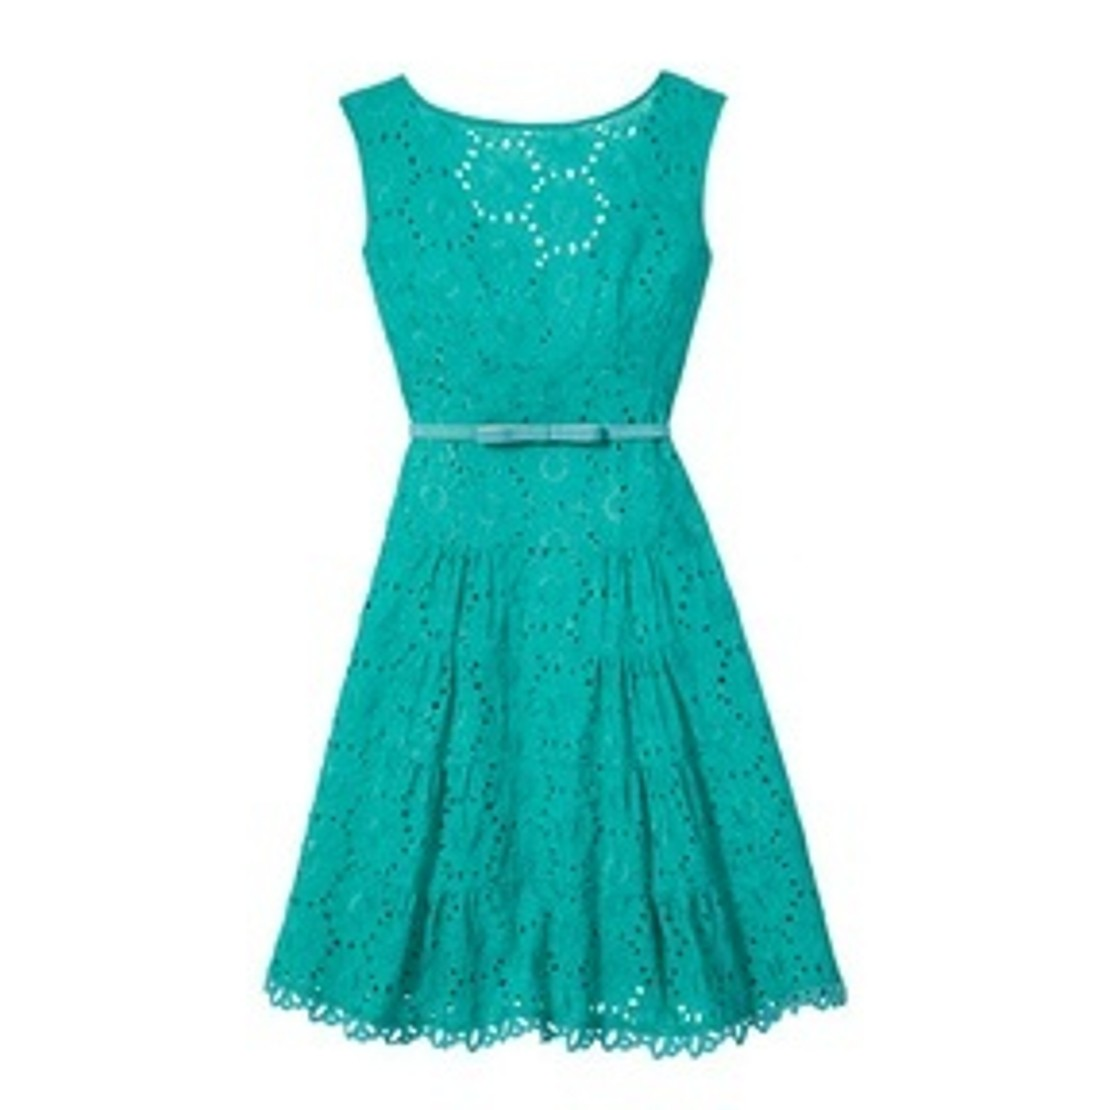 size 7 women's teal dress | gifts for kids and for the young at heart!